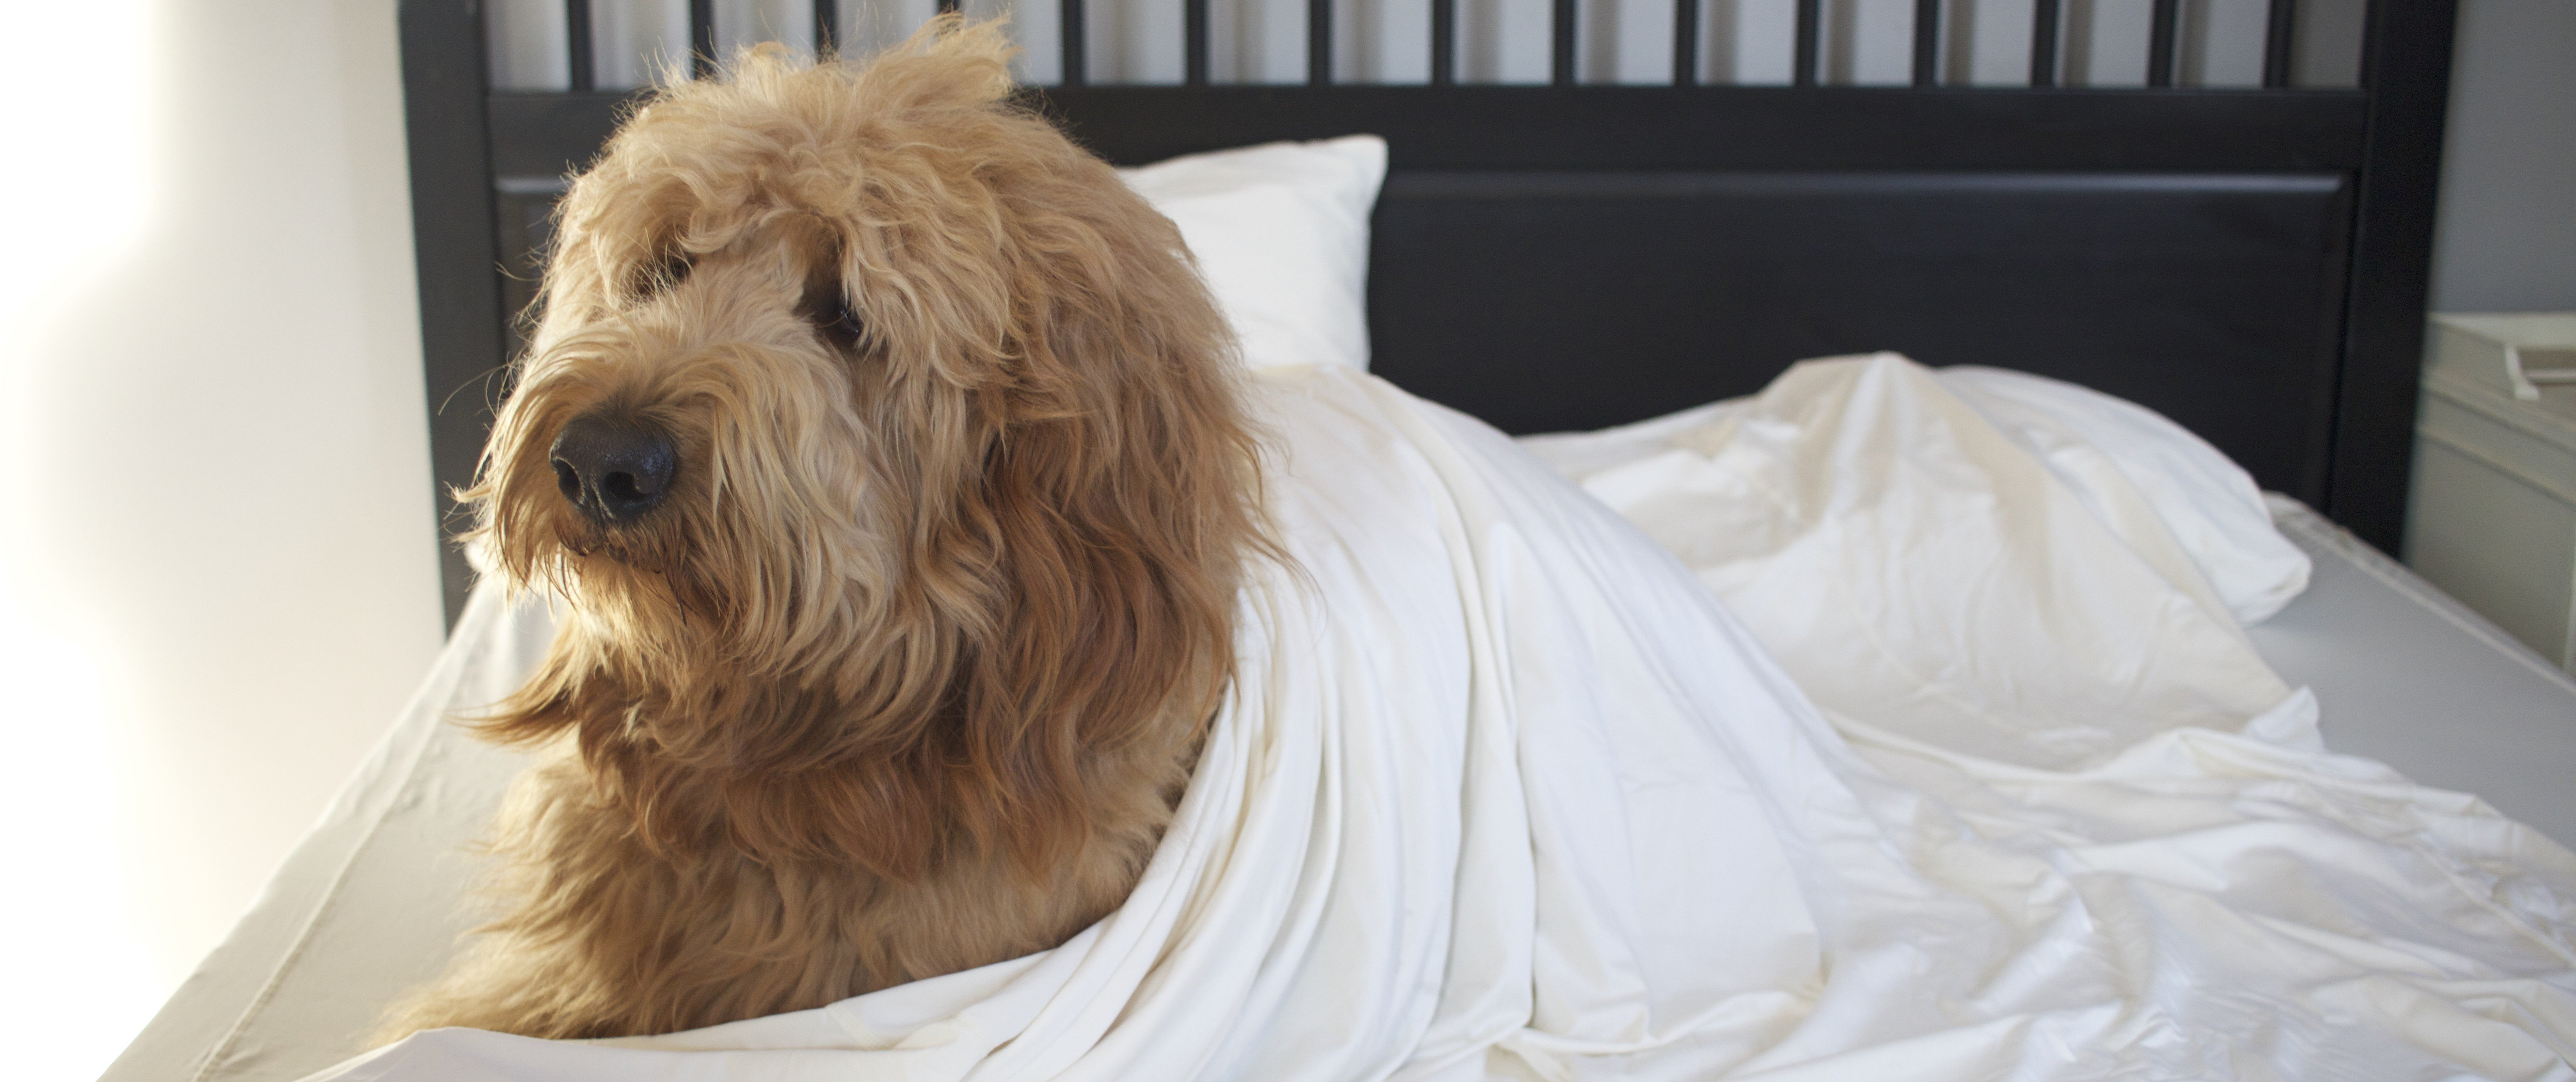 Sweet Dreams: Thoughts on Sleeping in SHEEX by Abbie and Winston The Dood